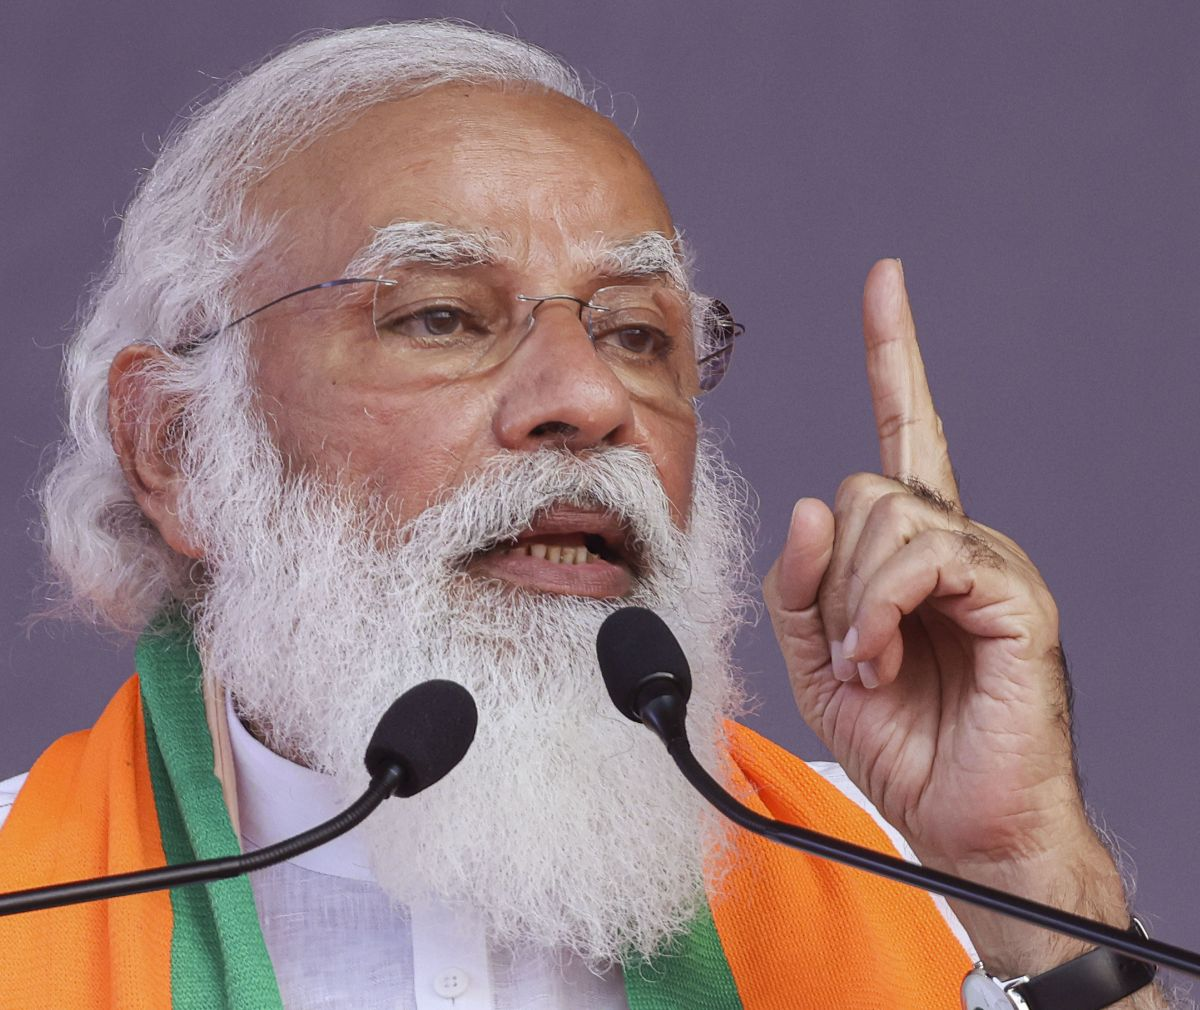 Modi regrets not learning 'world's oldest language' Tamil